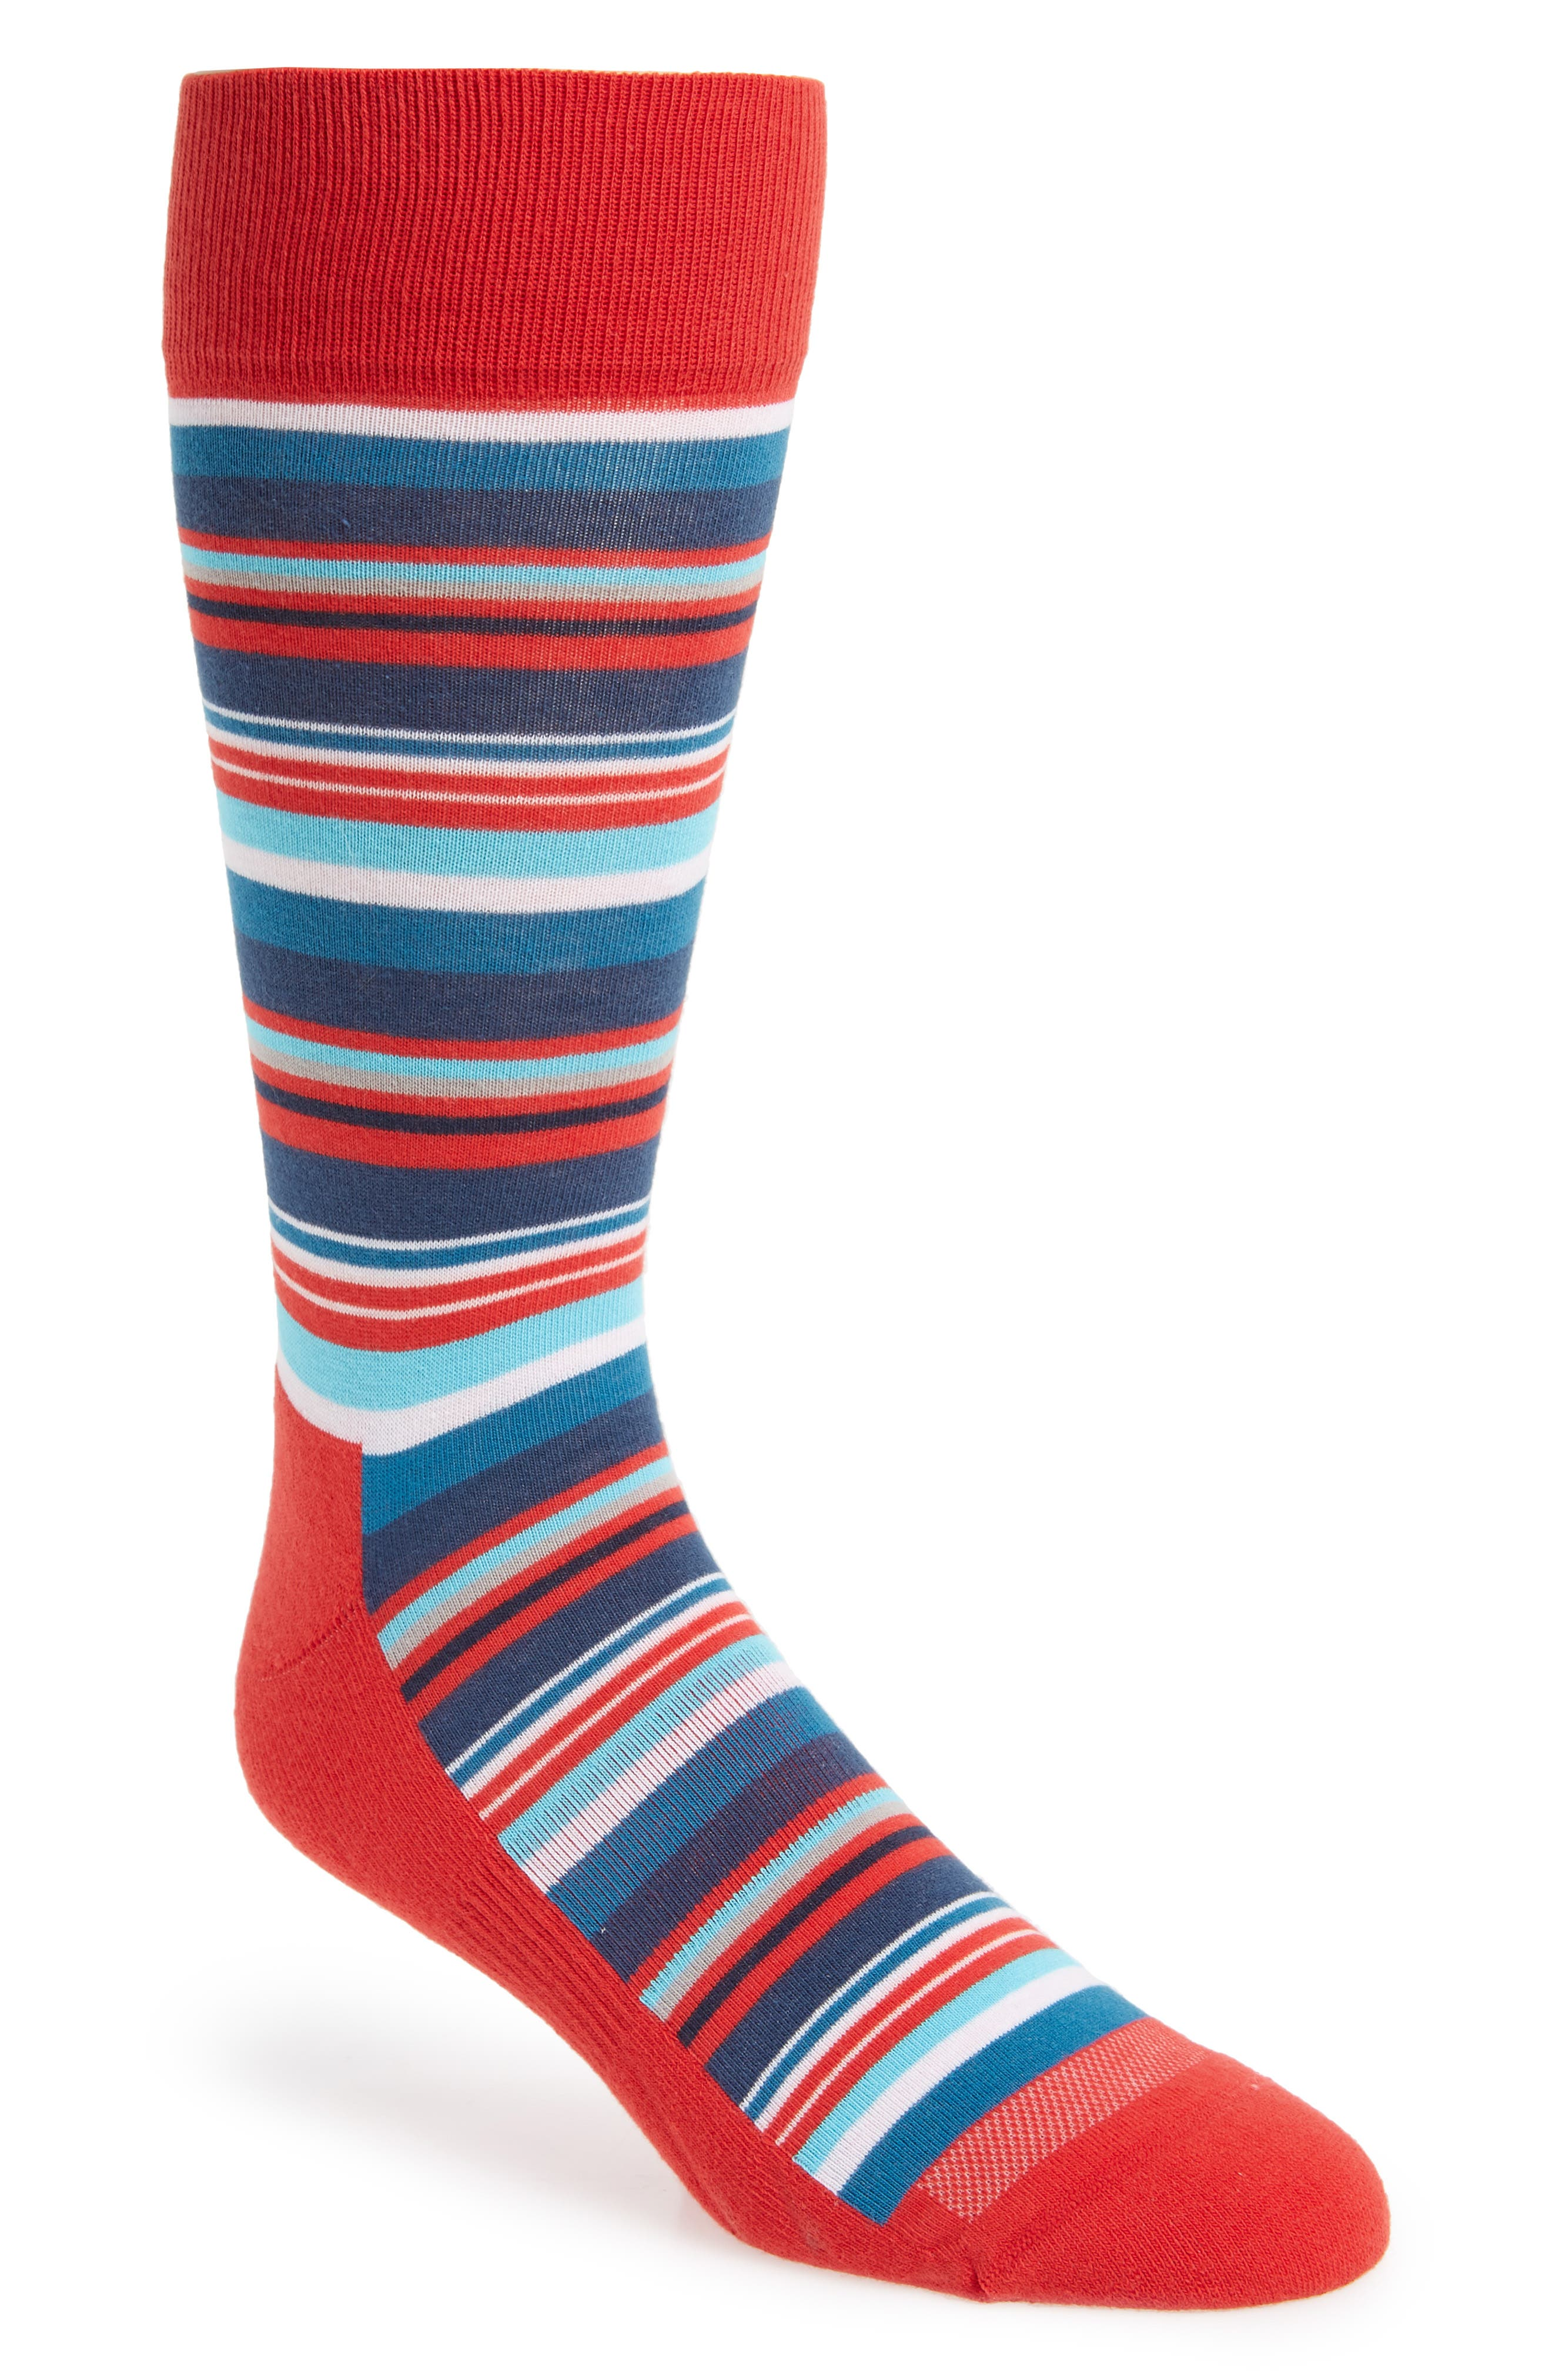 Variegated Stripe Socks,                         Main,                         color, Red/ White/ Blue